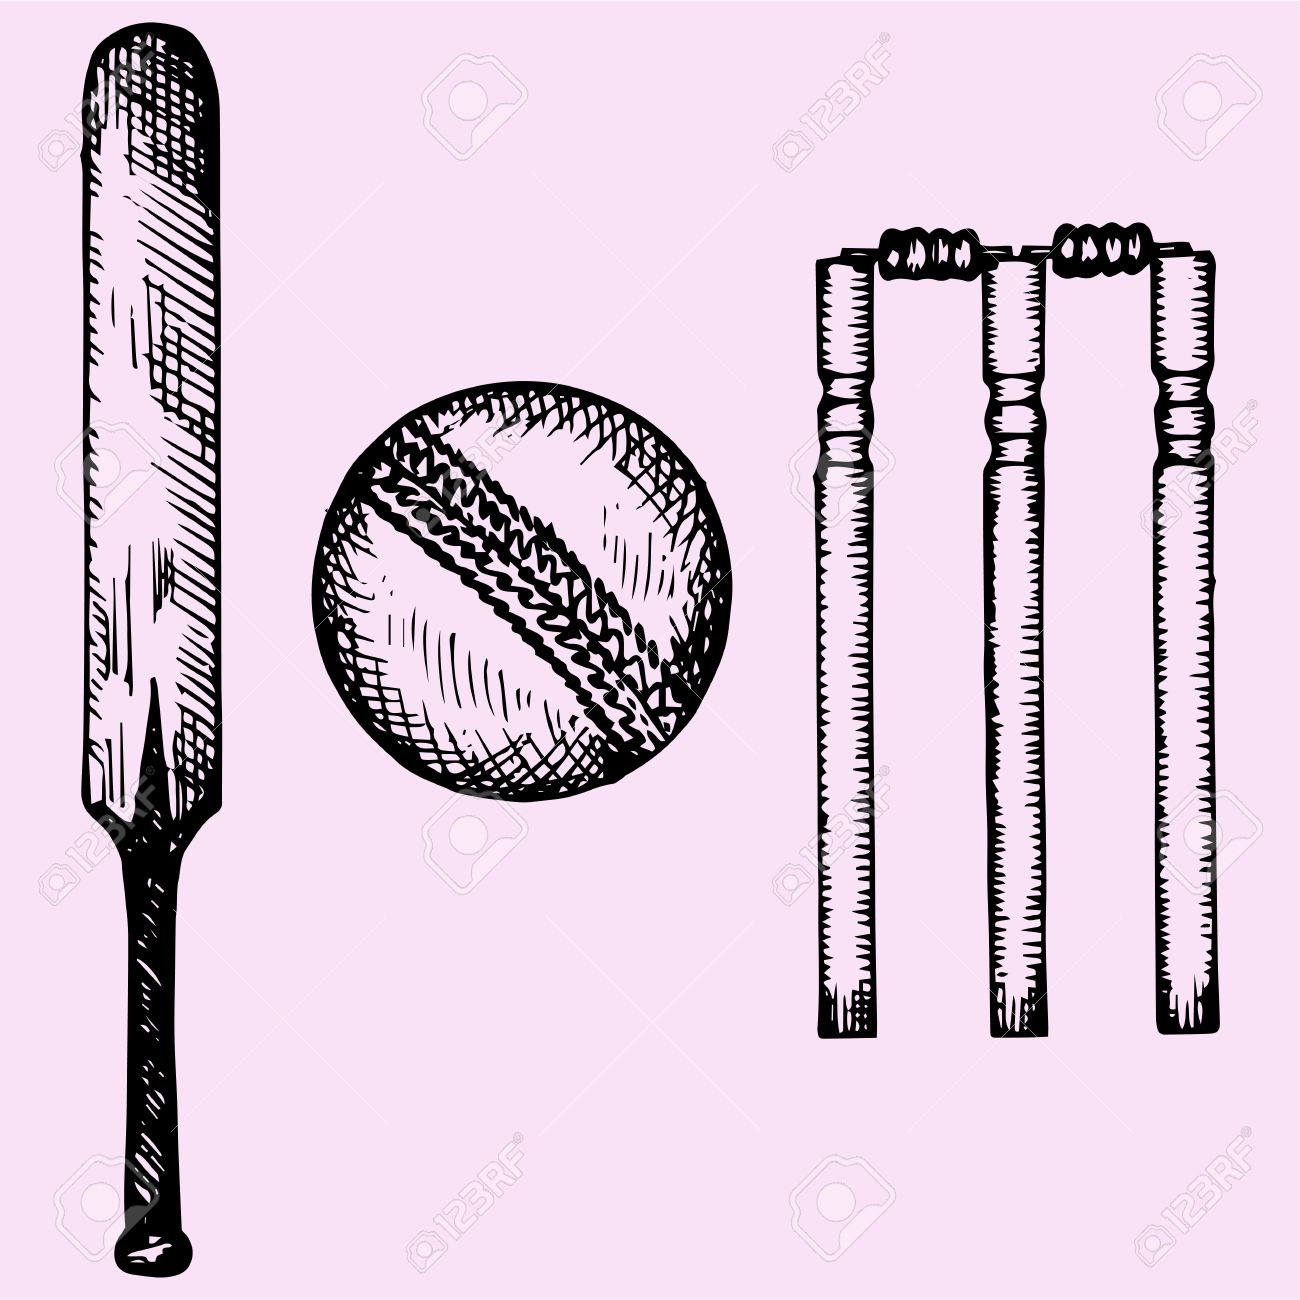 1300x1300 Set Of Equipment For Cricket Bat, Ball, Wicket, Doodle Style